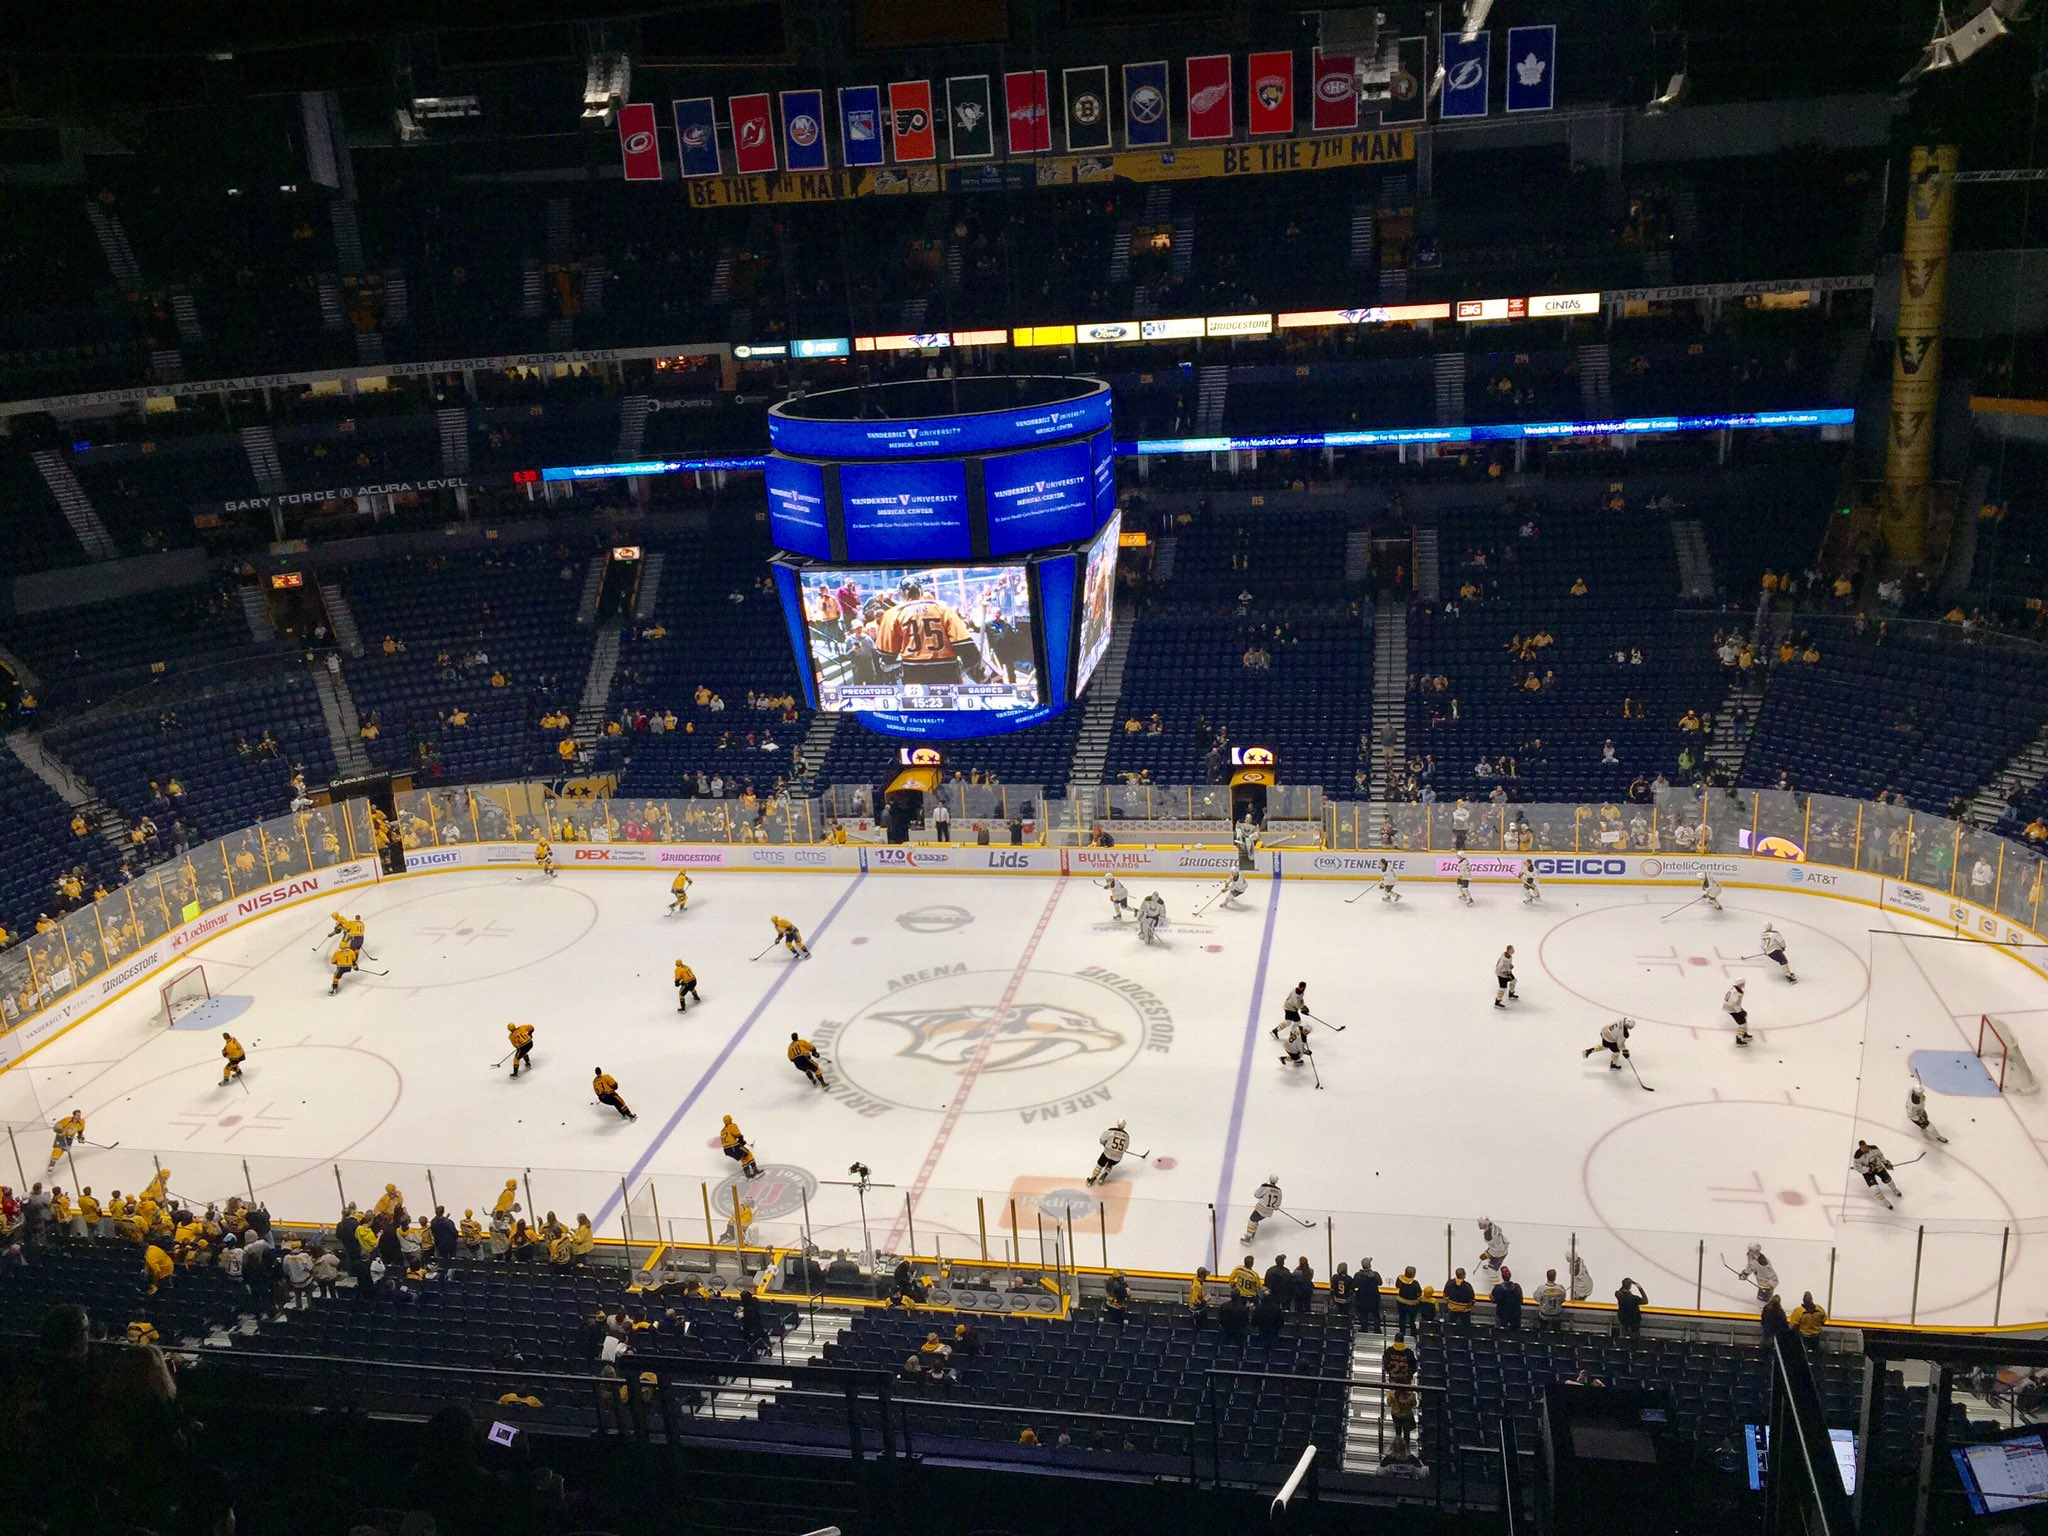 The Sabres face the Predators. (John Vogl/Buffalo News)